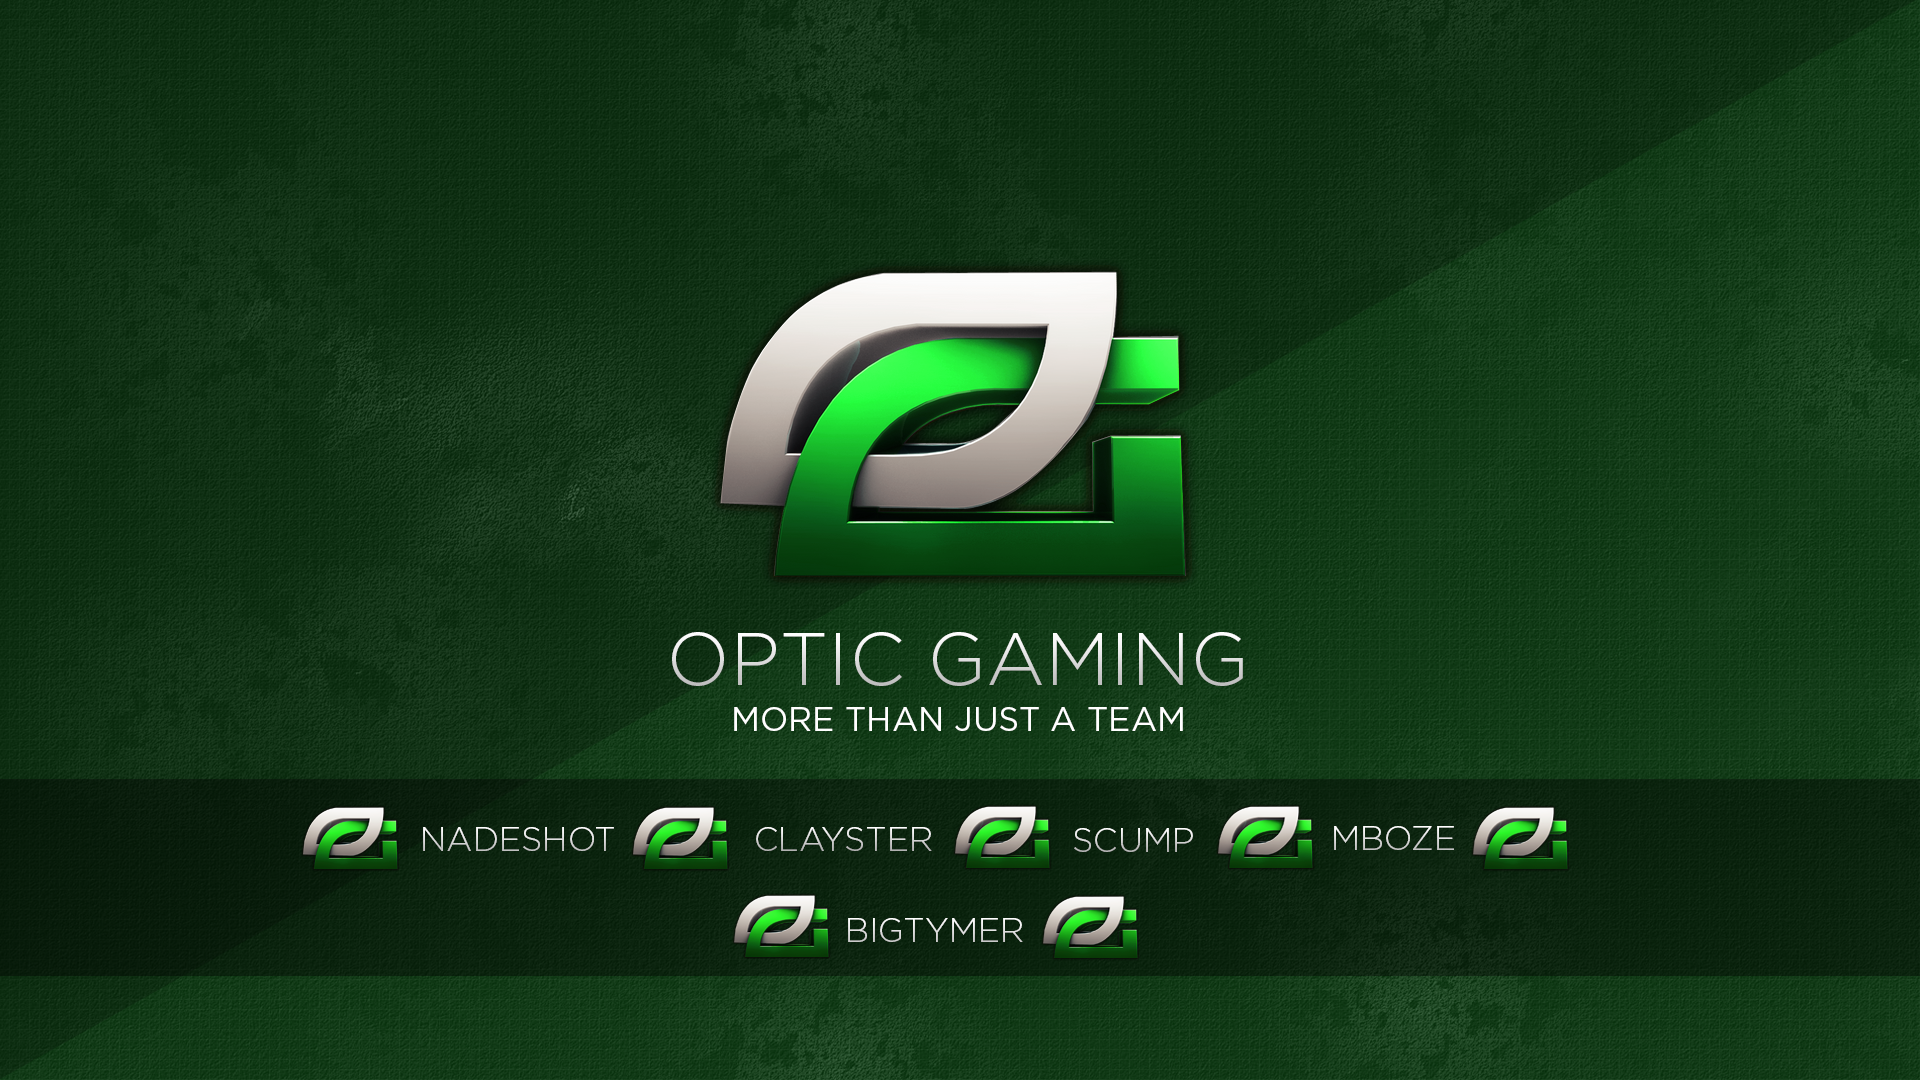 Optic Gaming 2015 Optic Gaming Desktop 1920x1080